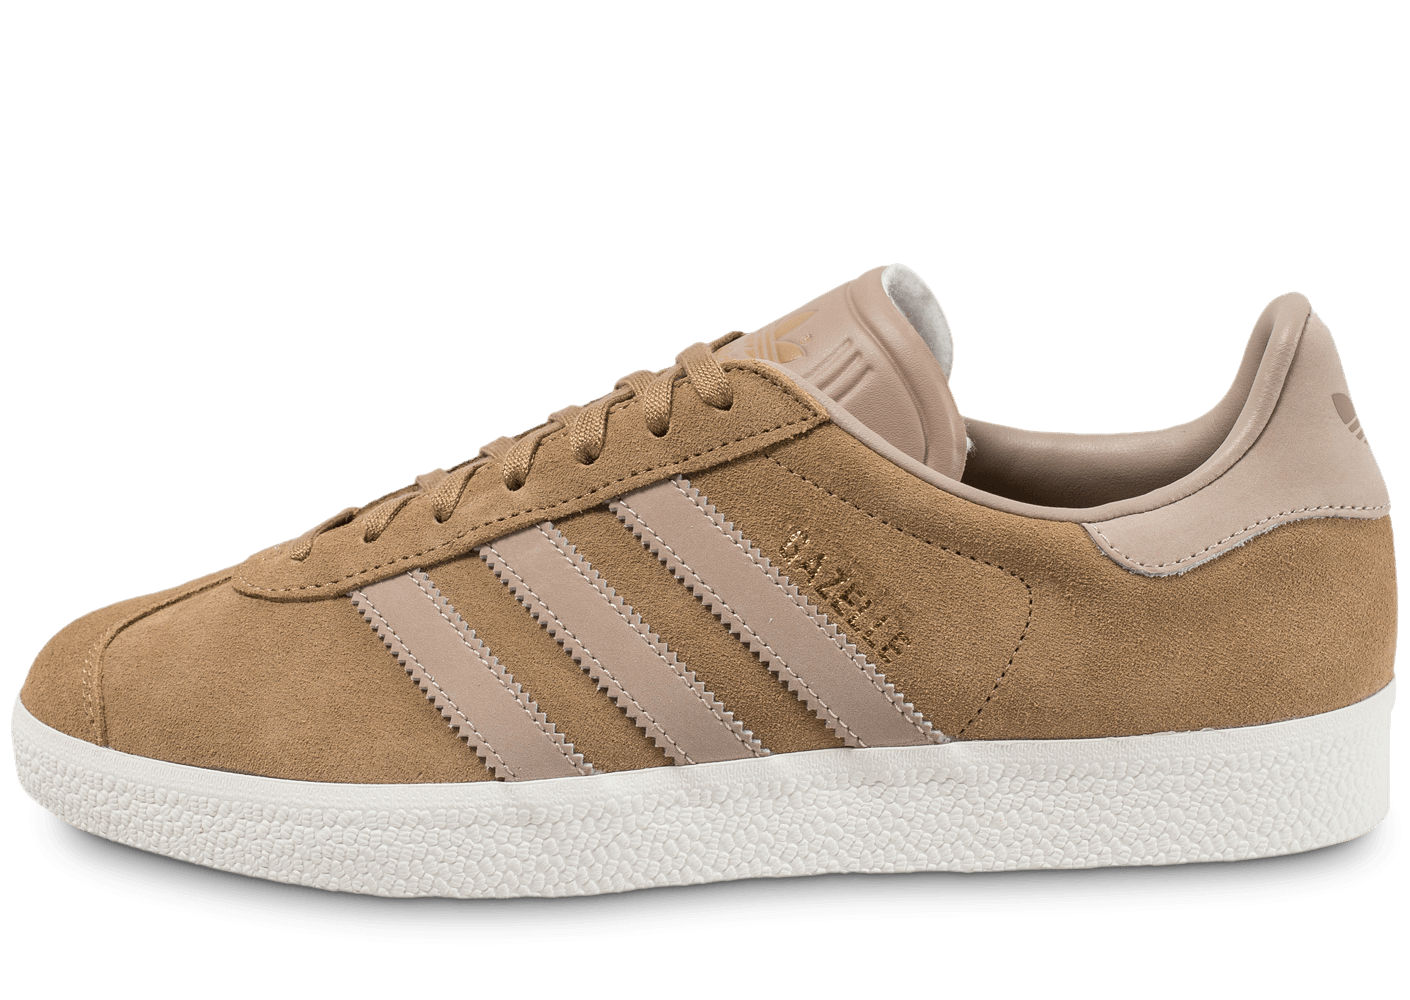 adidas gazelle marron clair chaussures homme chausport. Black Bedroom Furniture Sets. Home Design Ideas